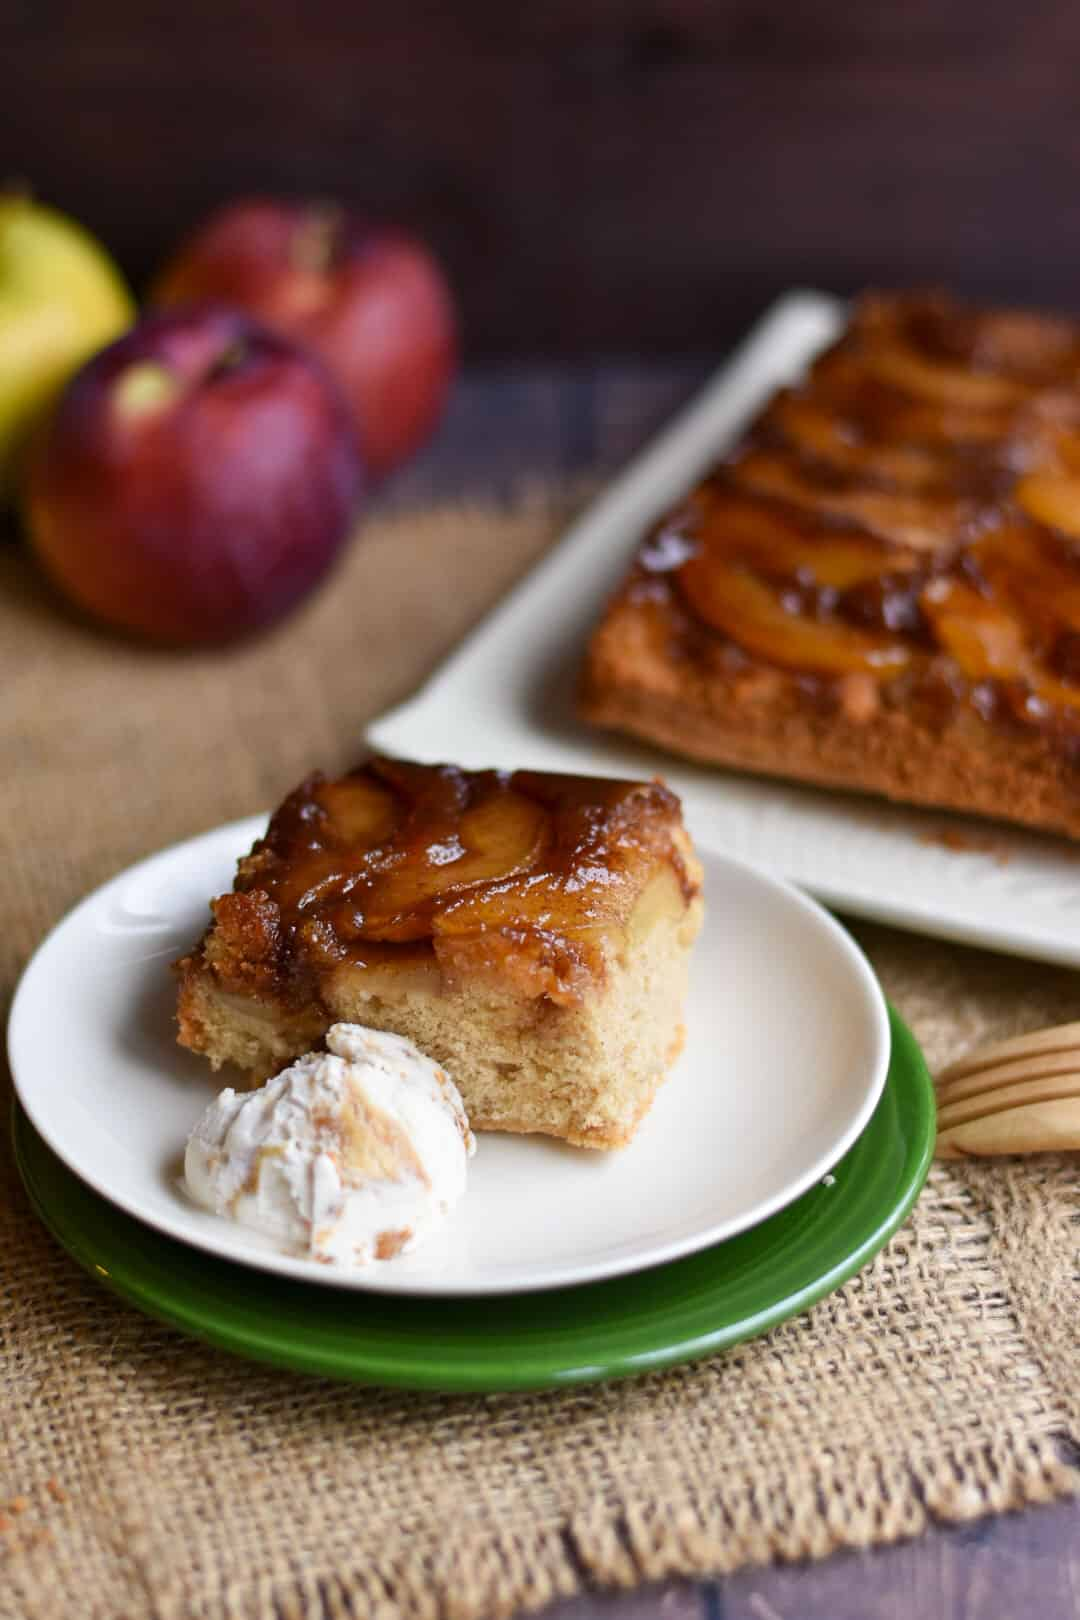 slice of apple cinnamon upside down cake on a plate with ice cream